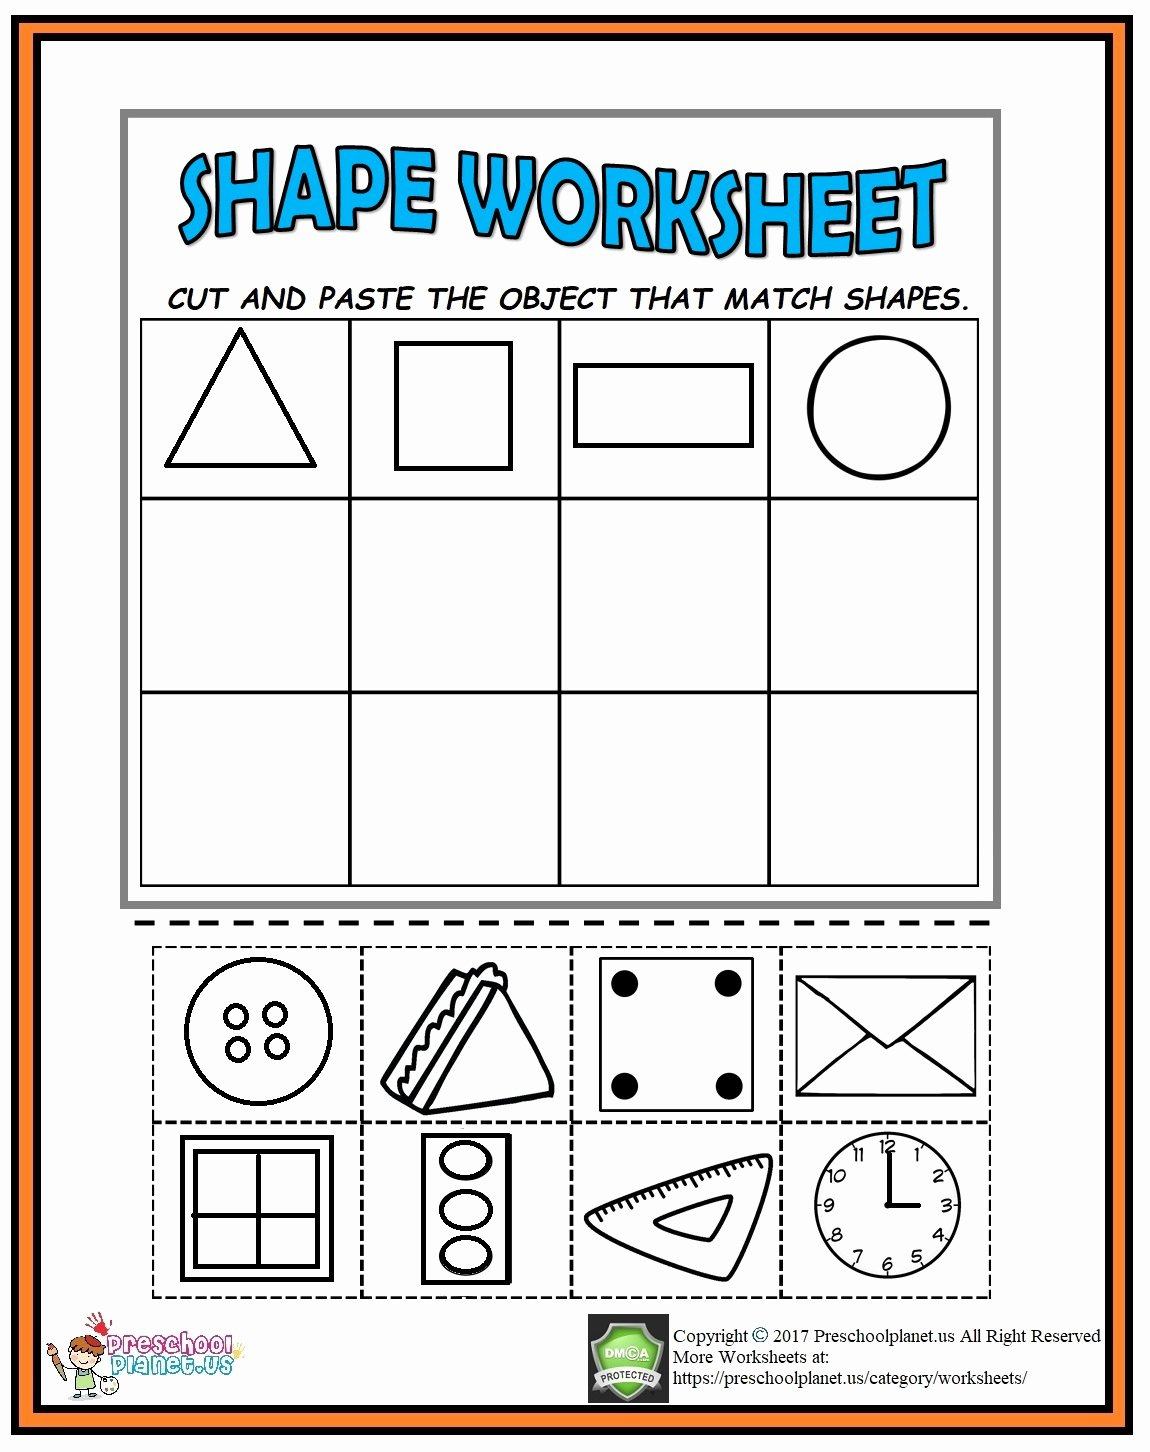 Cutting Shapes Worksheets For Preschoolers